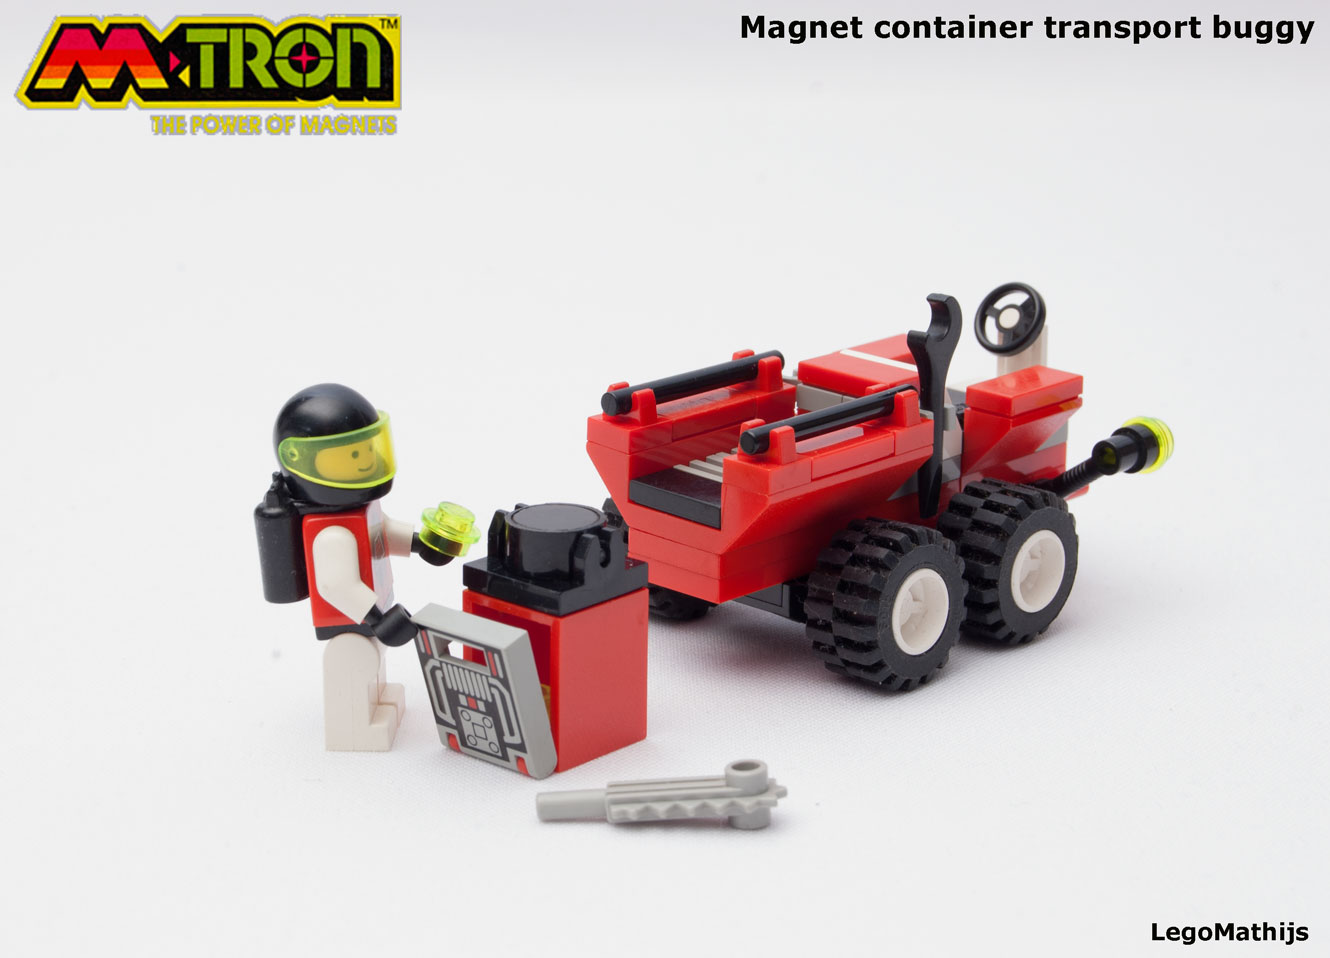 02_mtron_magnet_container_transport_buggy.jpg